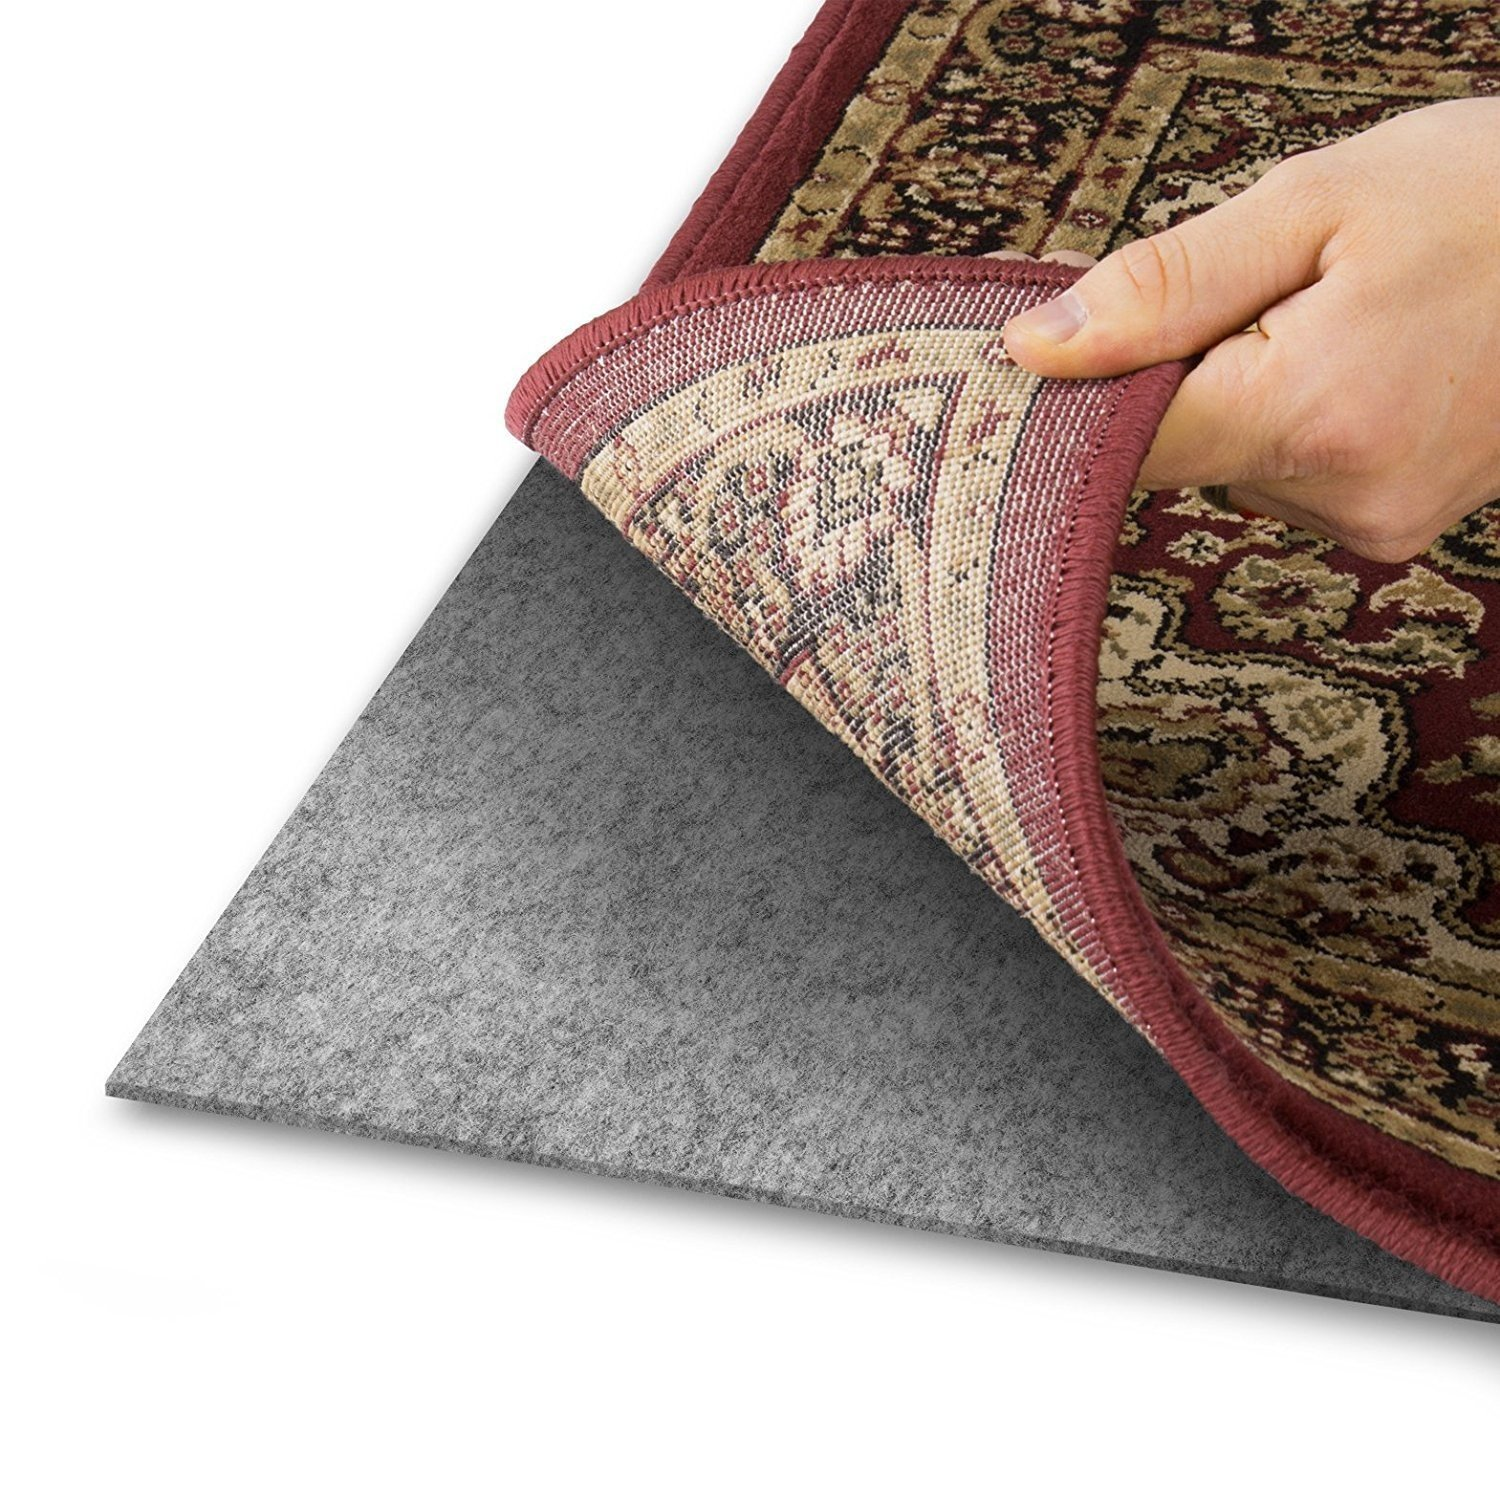 Ambiant Felt Rug Pads for Hardwood Floors Oriental Rug Pads-100% Recycled-Safe for All Floors - 5' x 7' oval